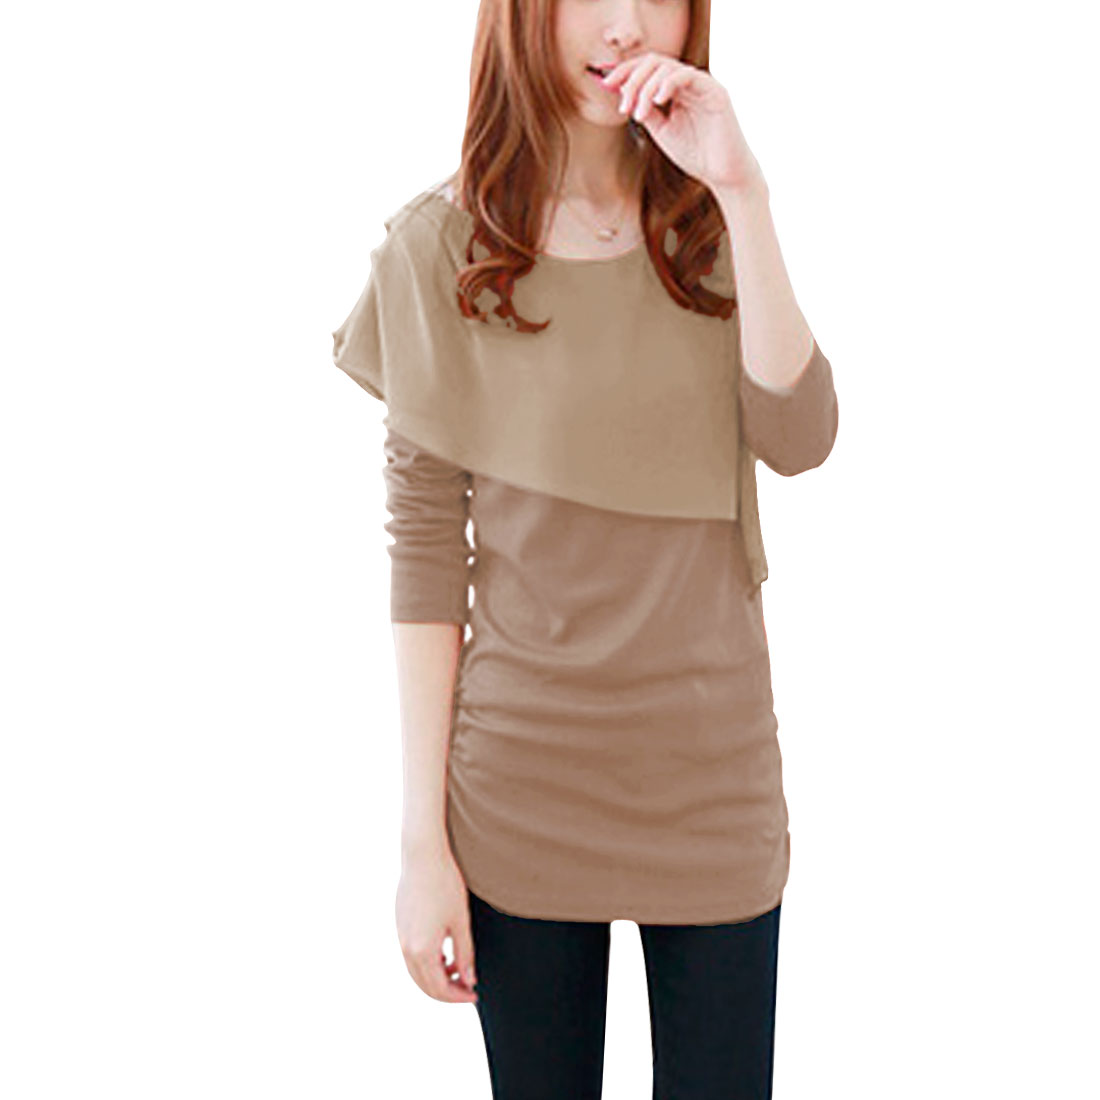 Lady Khaki Stretchy Pullover Chiffon Splice Long Sleeve Tunic Shirt XS